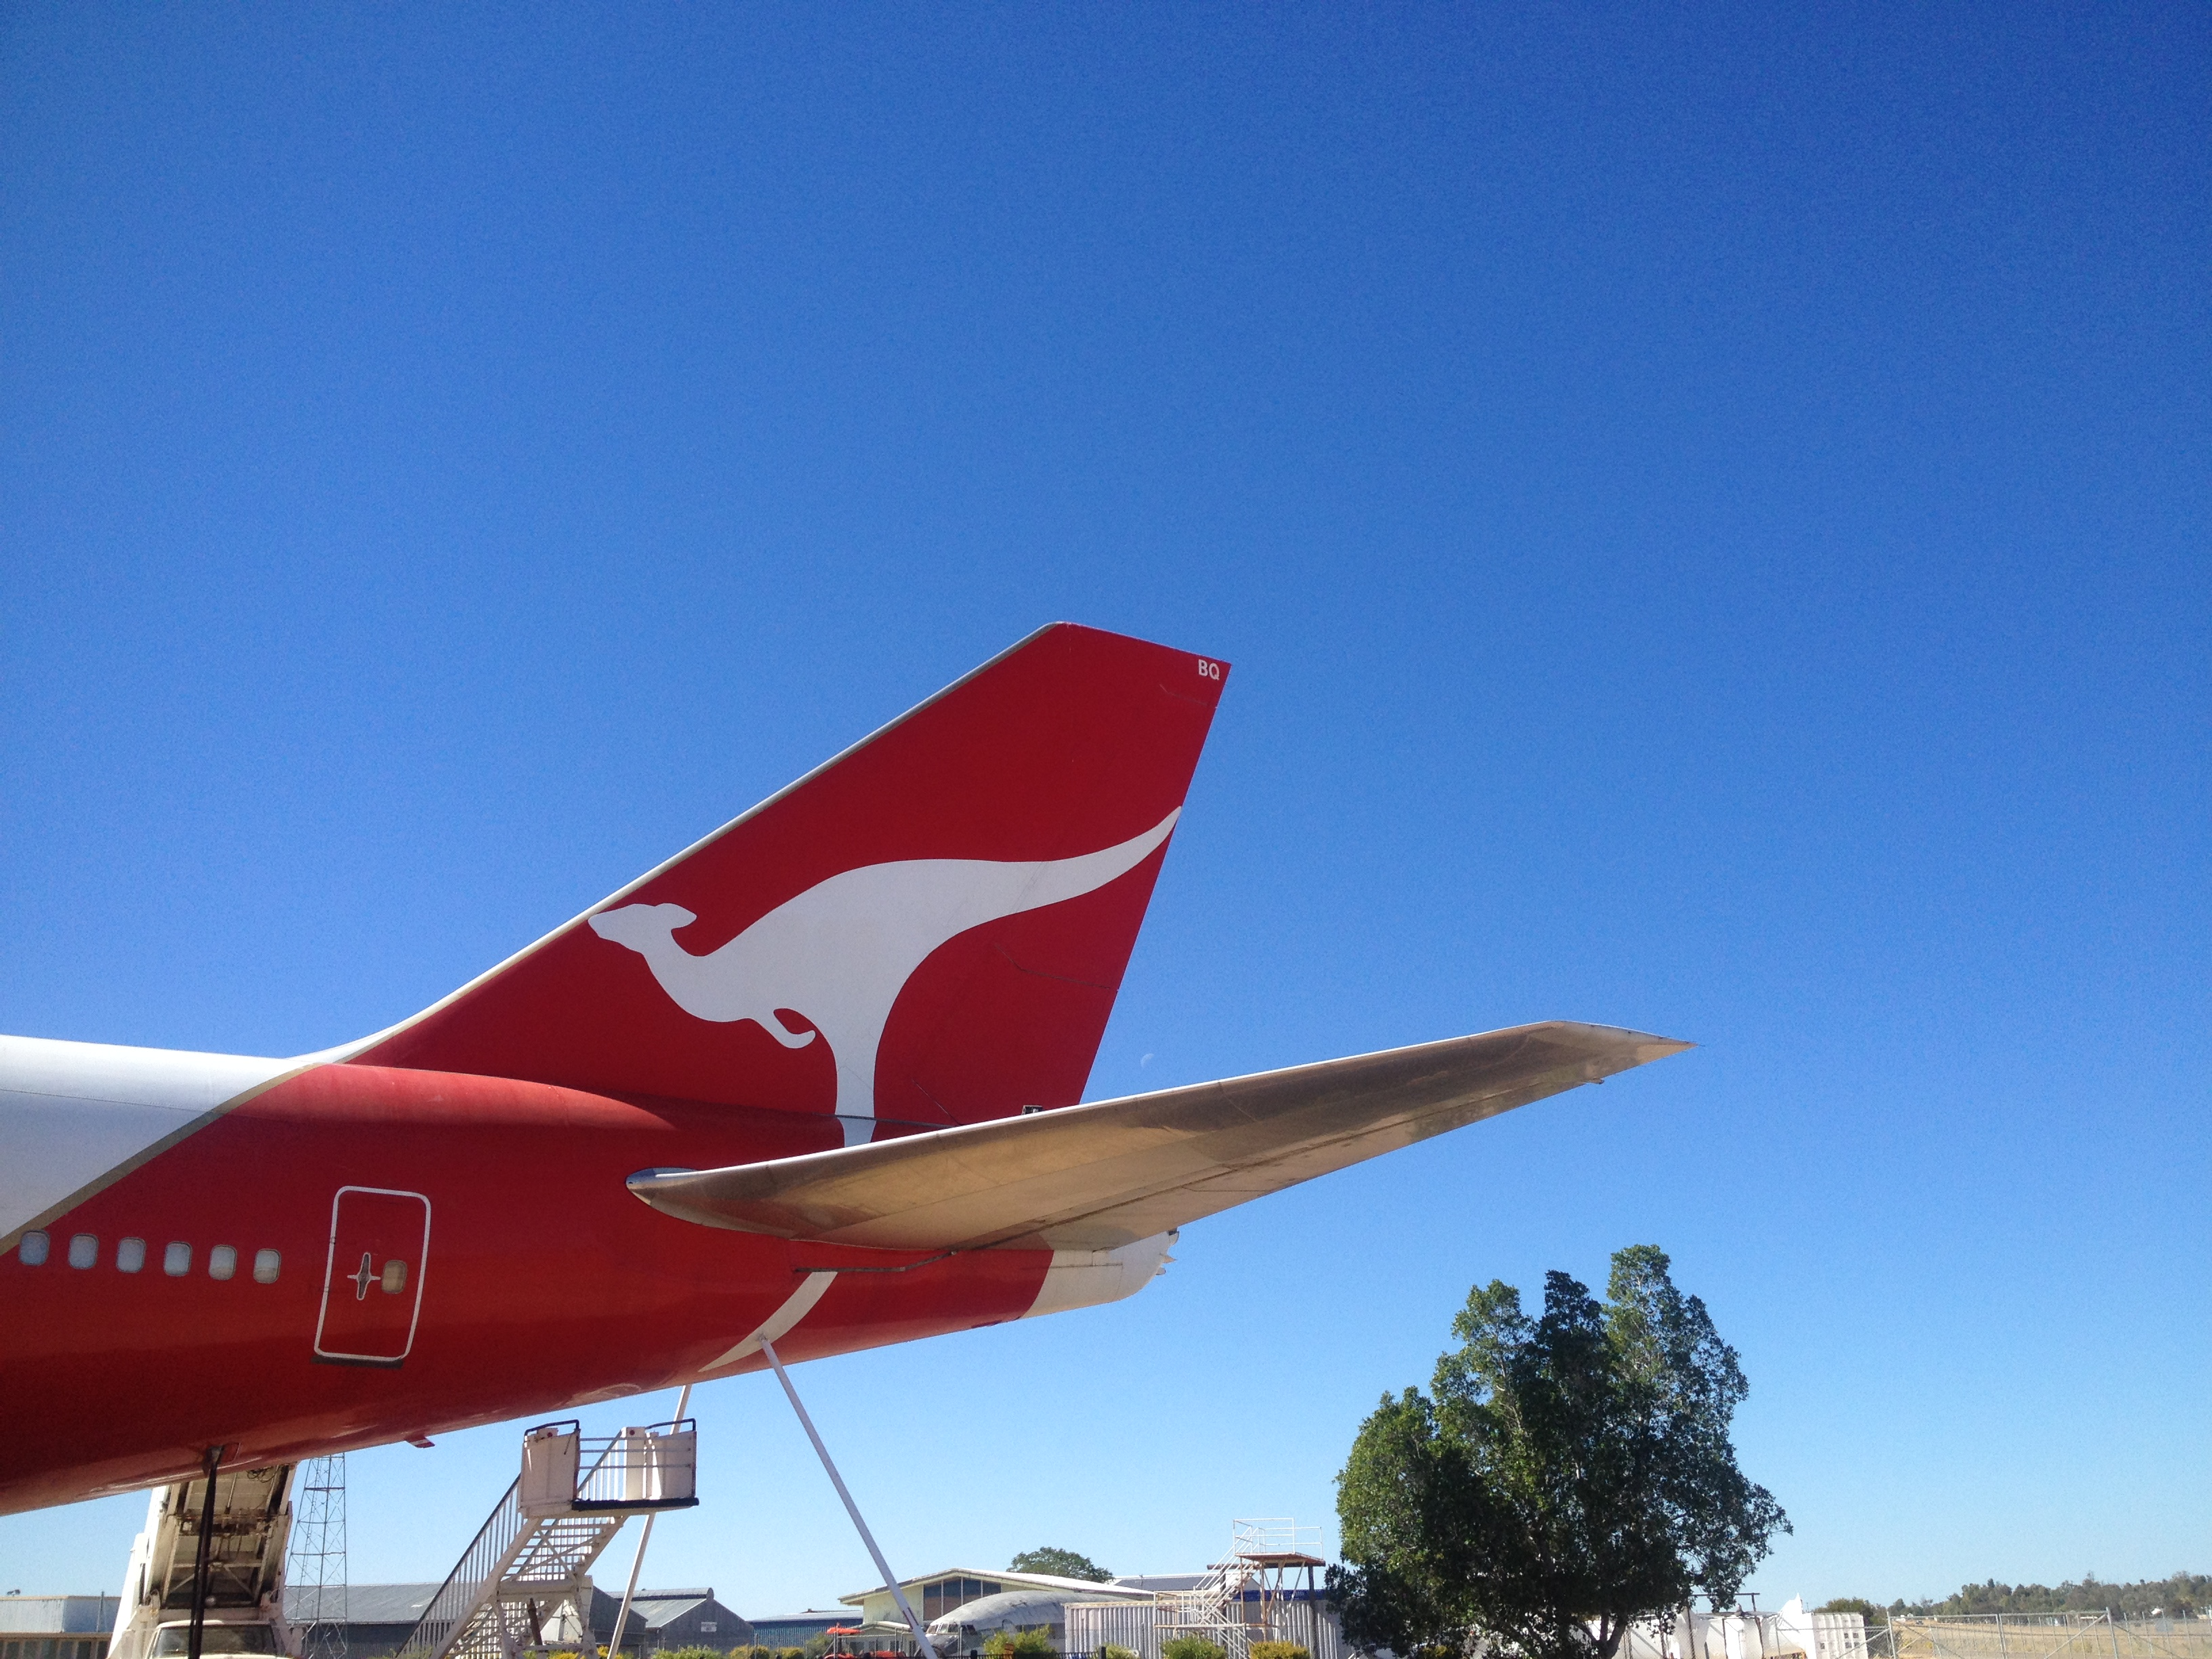 The signature Qantas tail